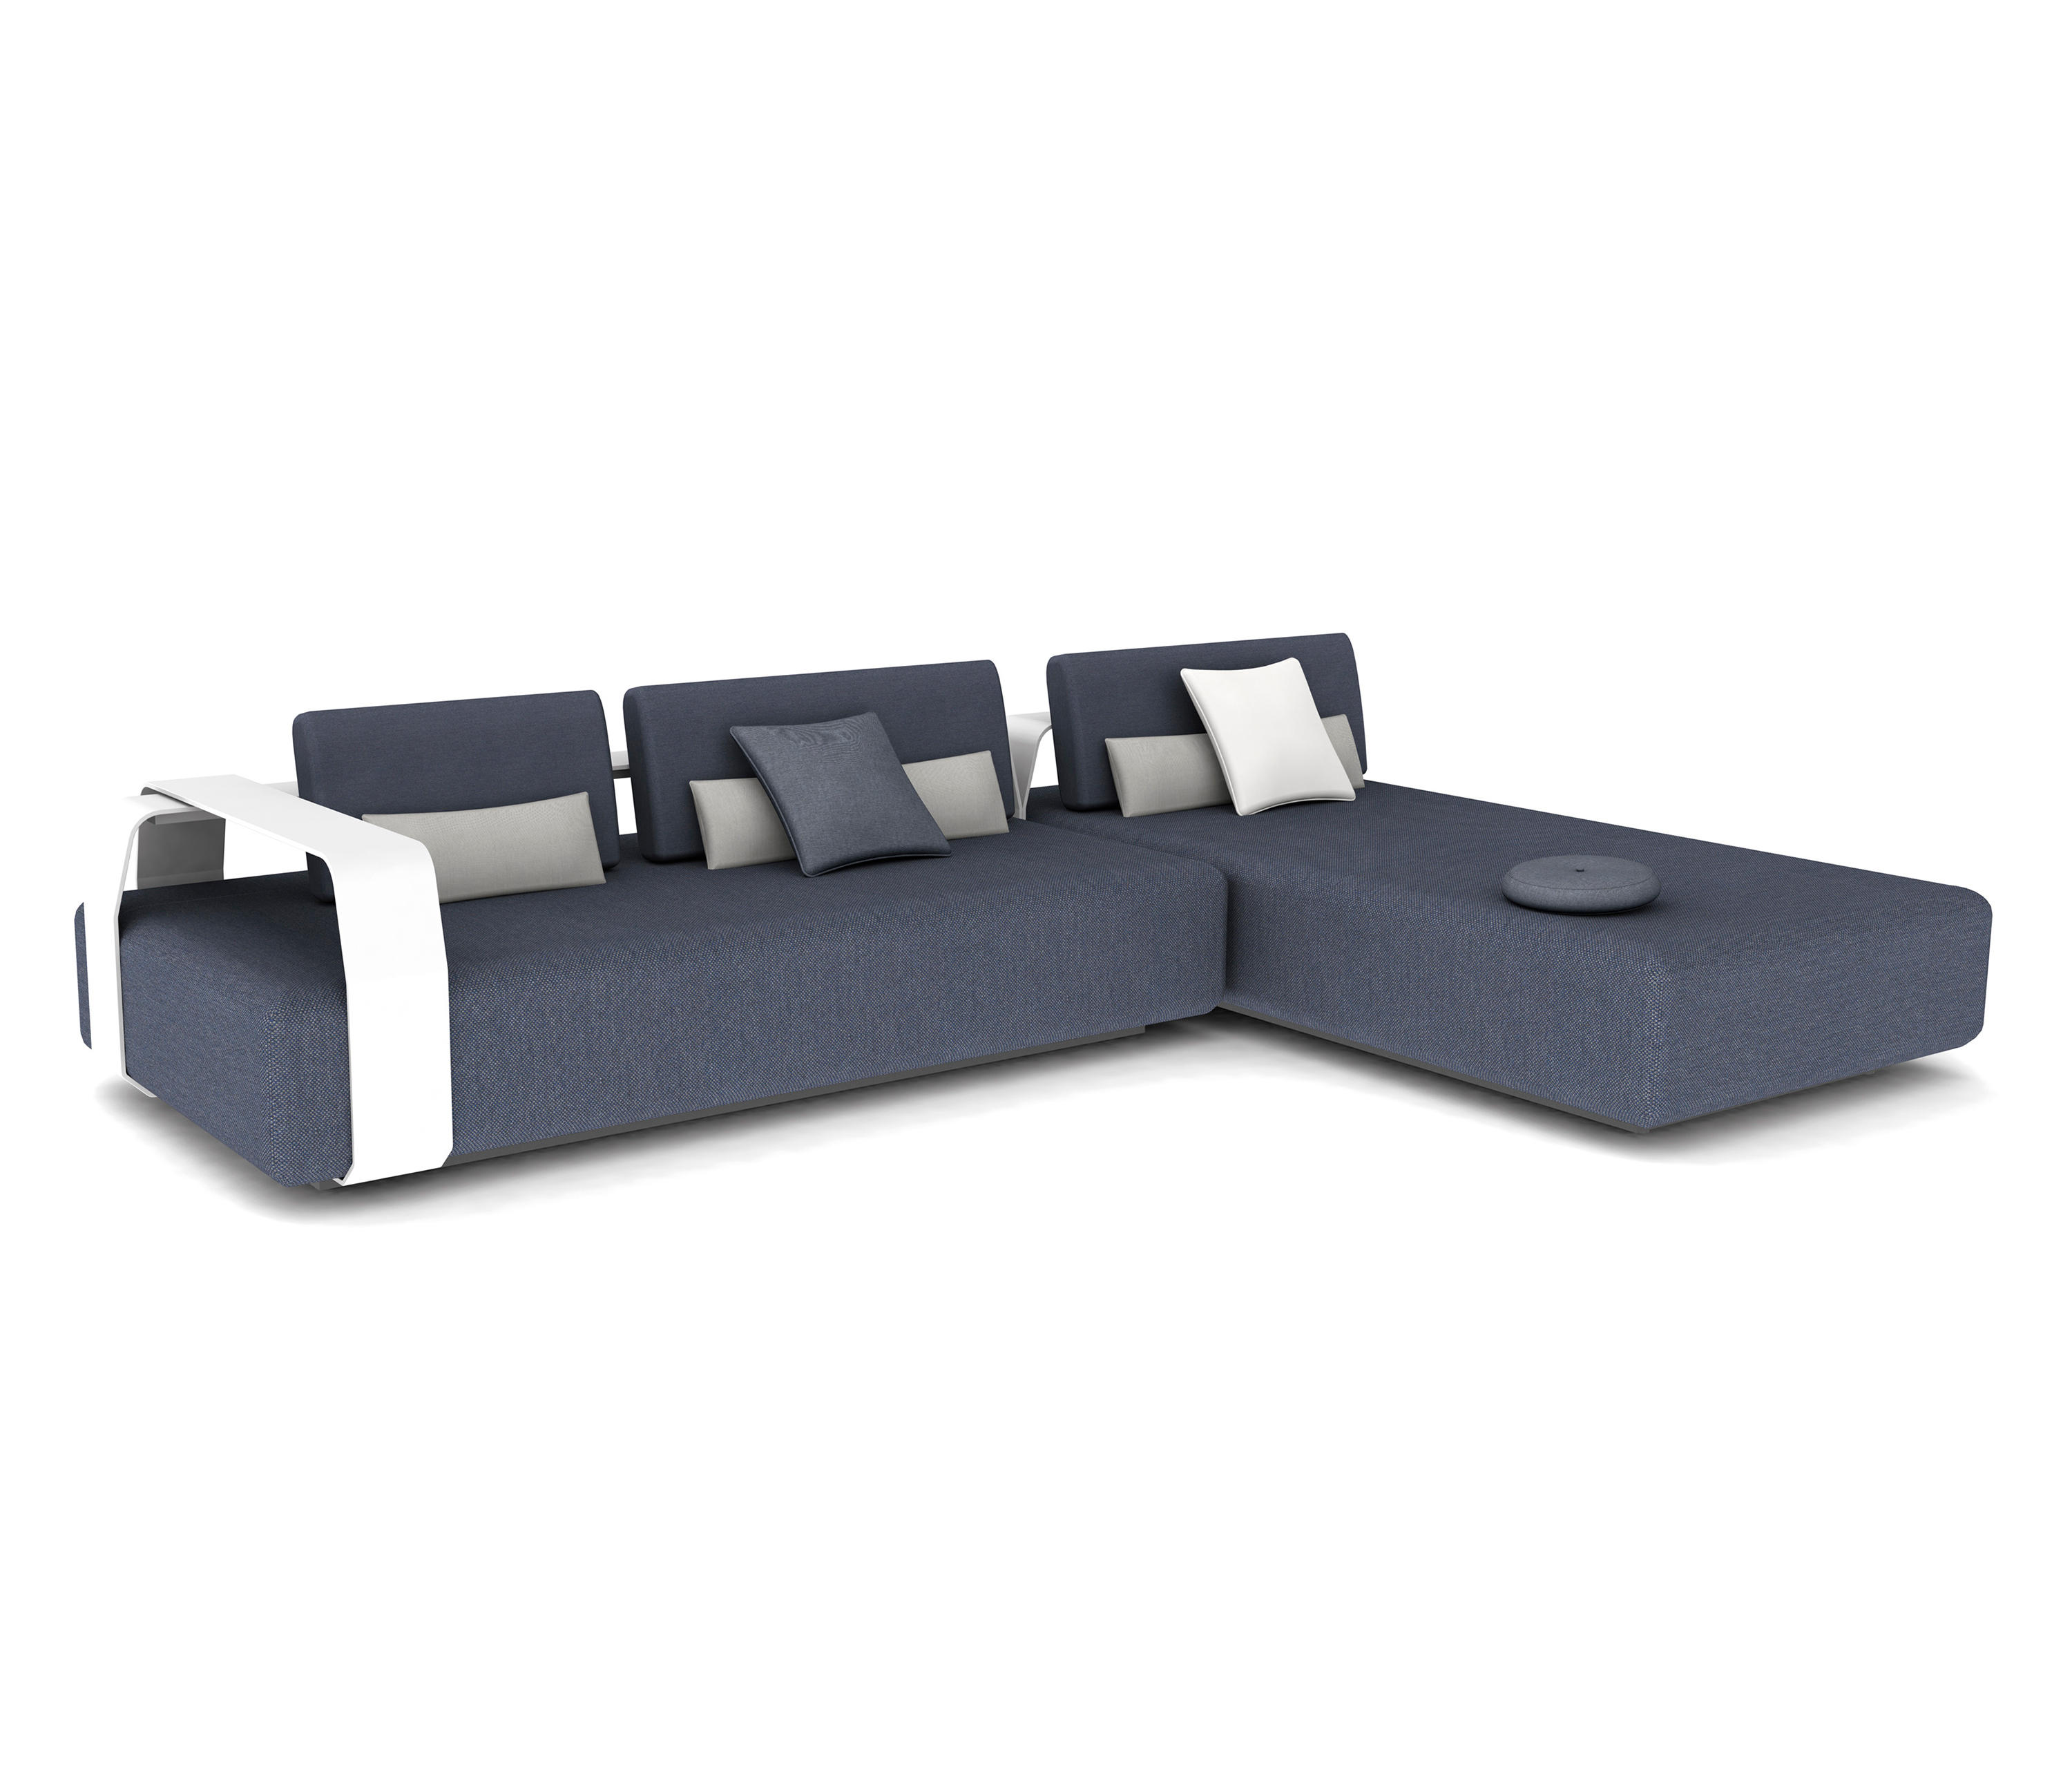 KUMO CONCEPT 5 - Sofas From Manutti